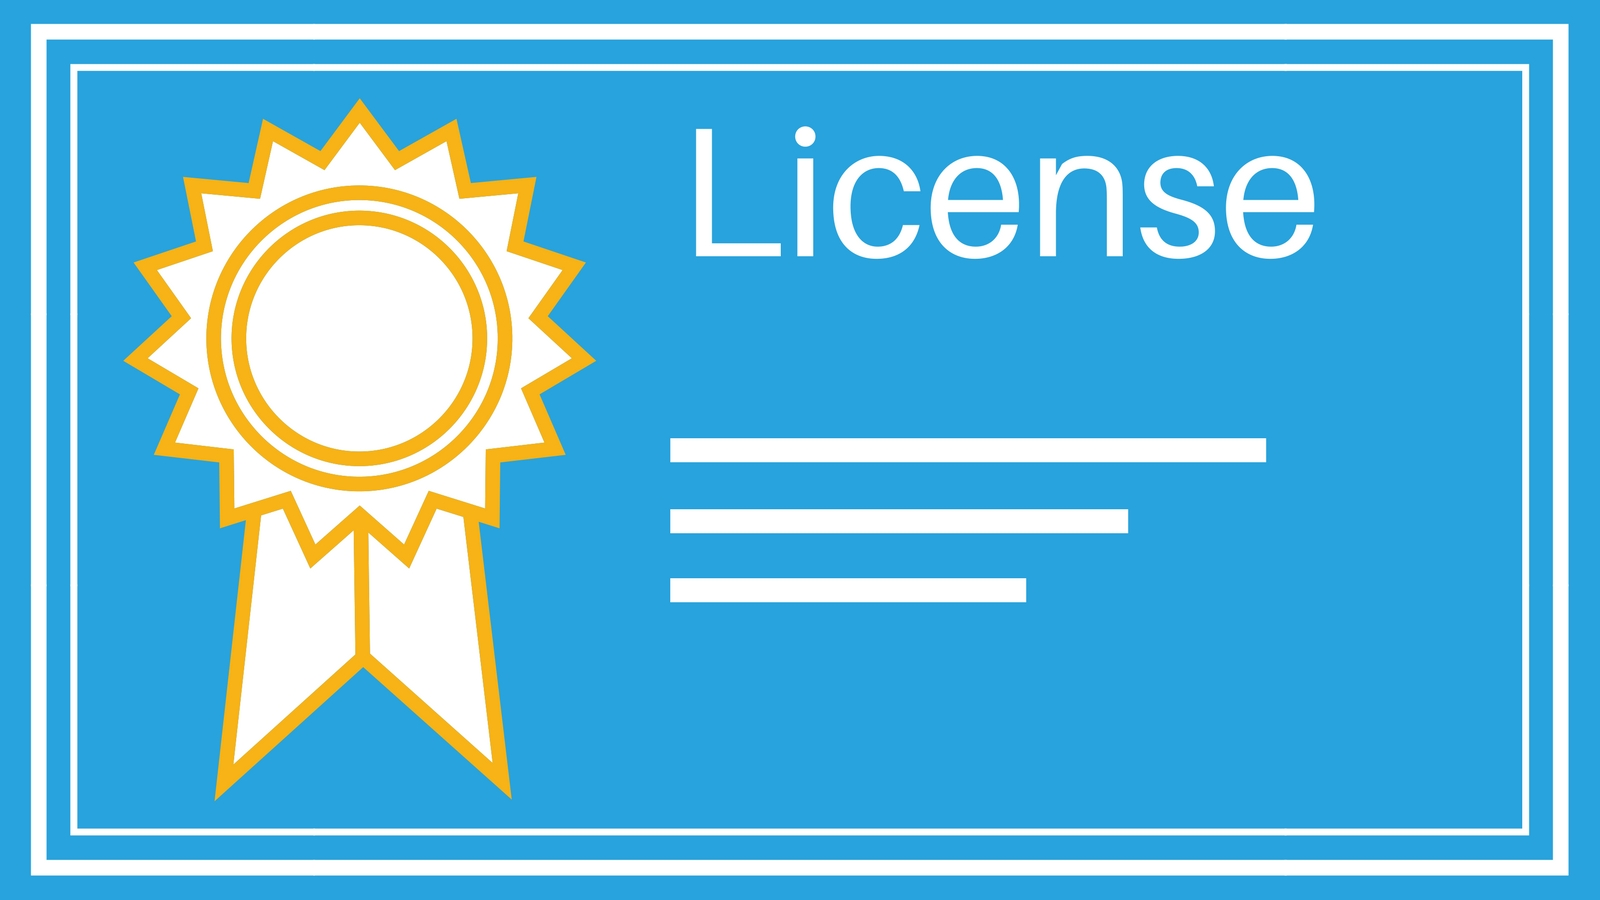 Extensions license types